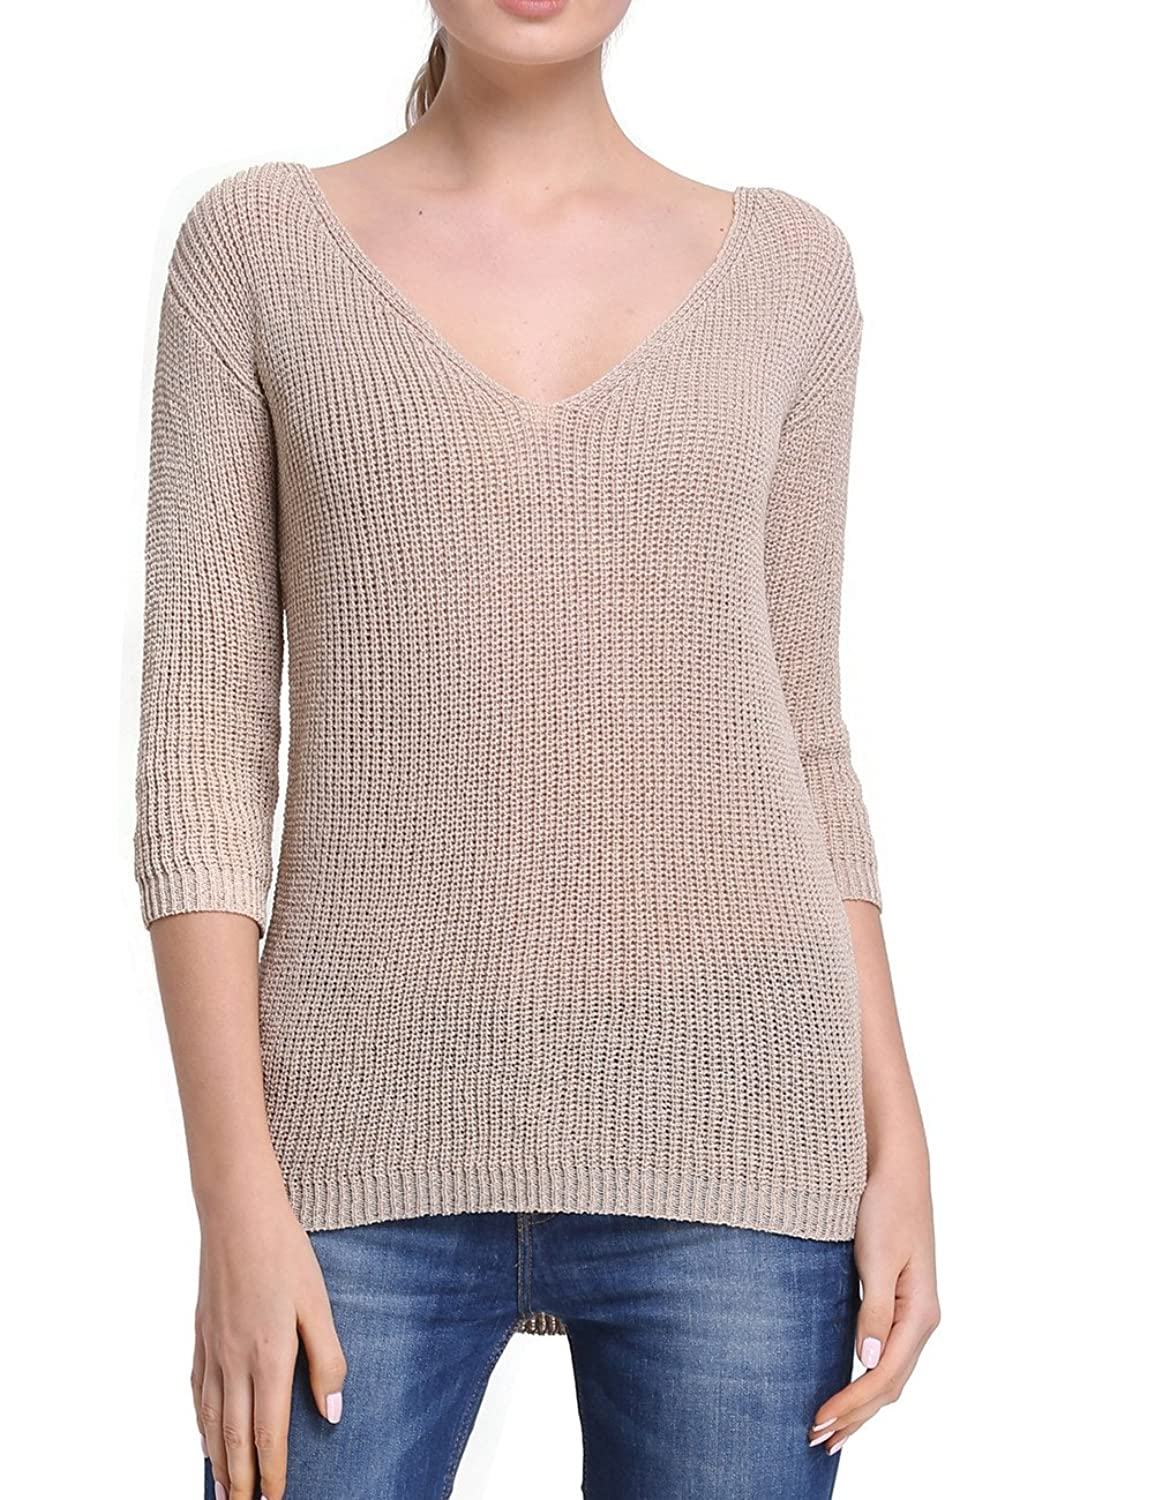 Firpearl Women's V Neck Textured Knit 3/4 Sleeve London Tunic Sweater